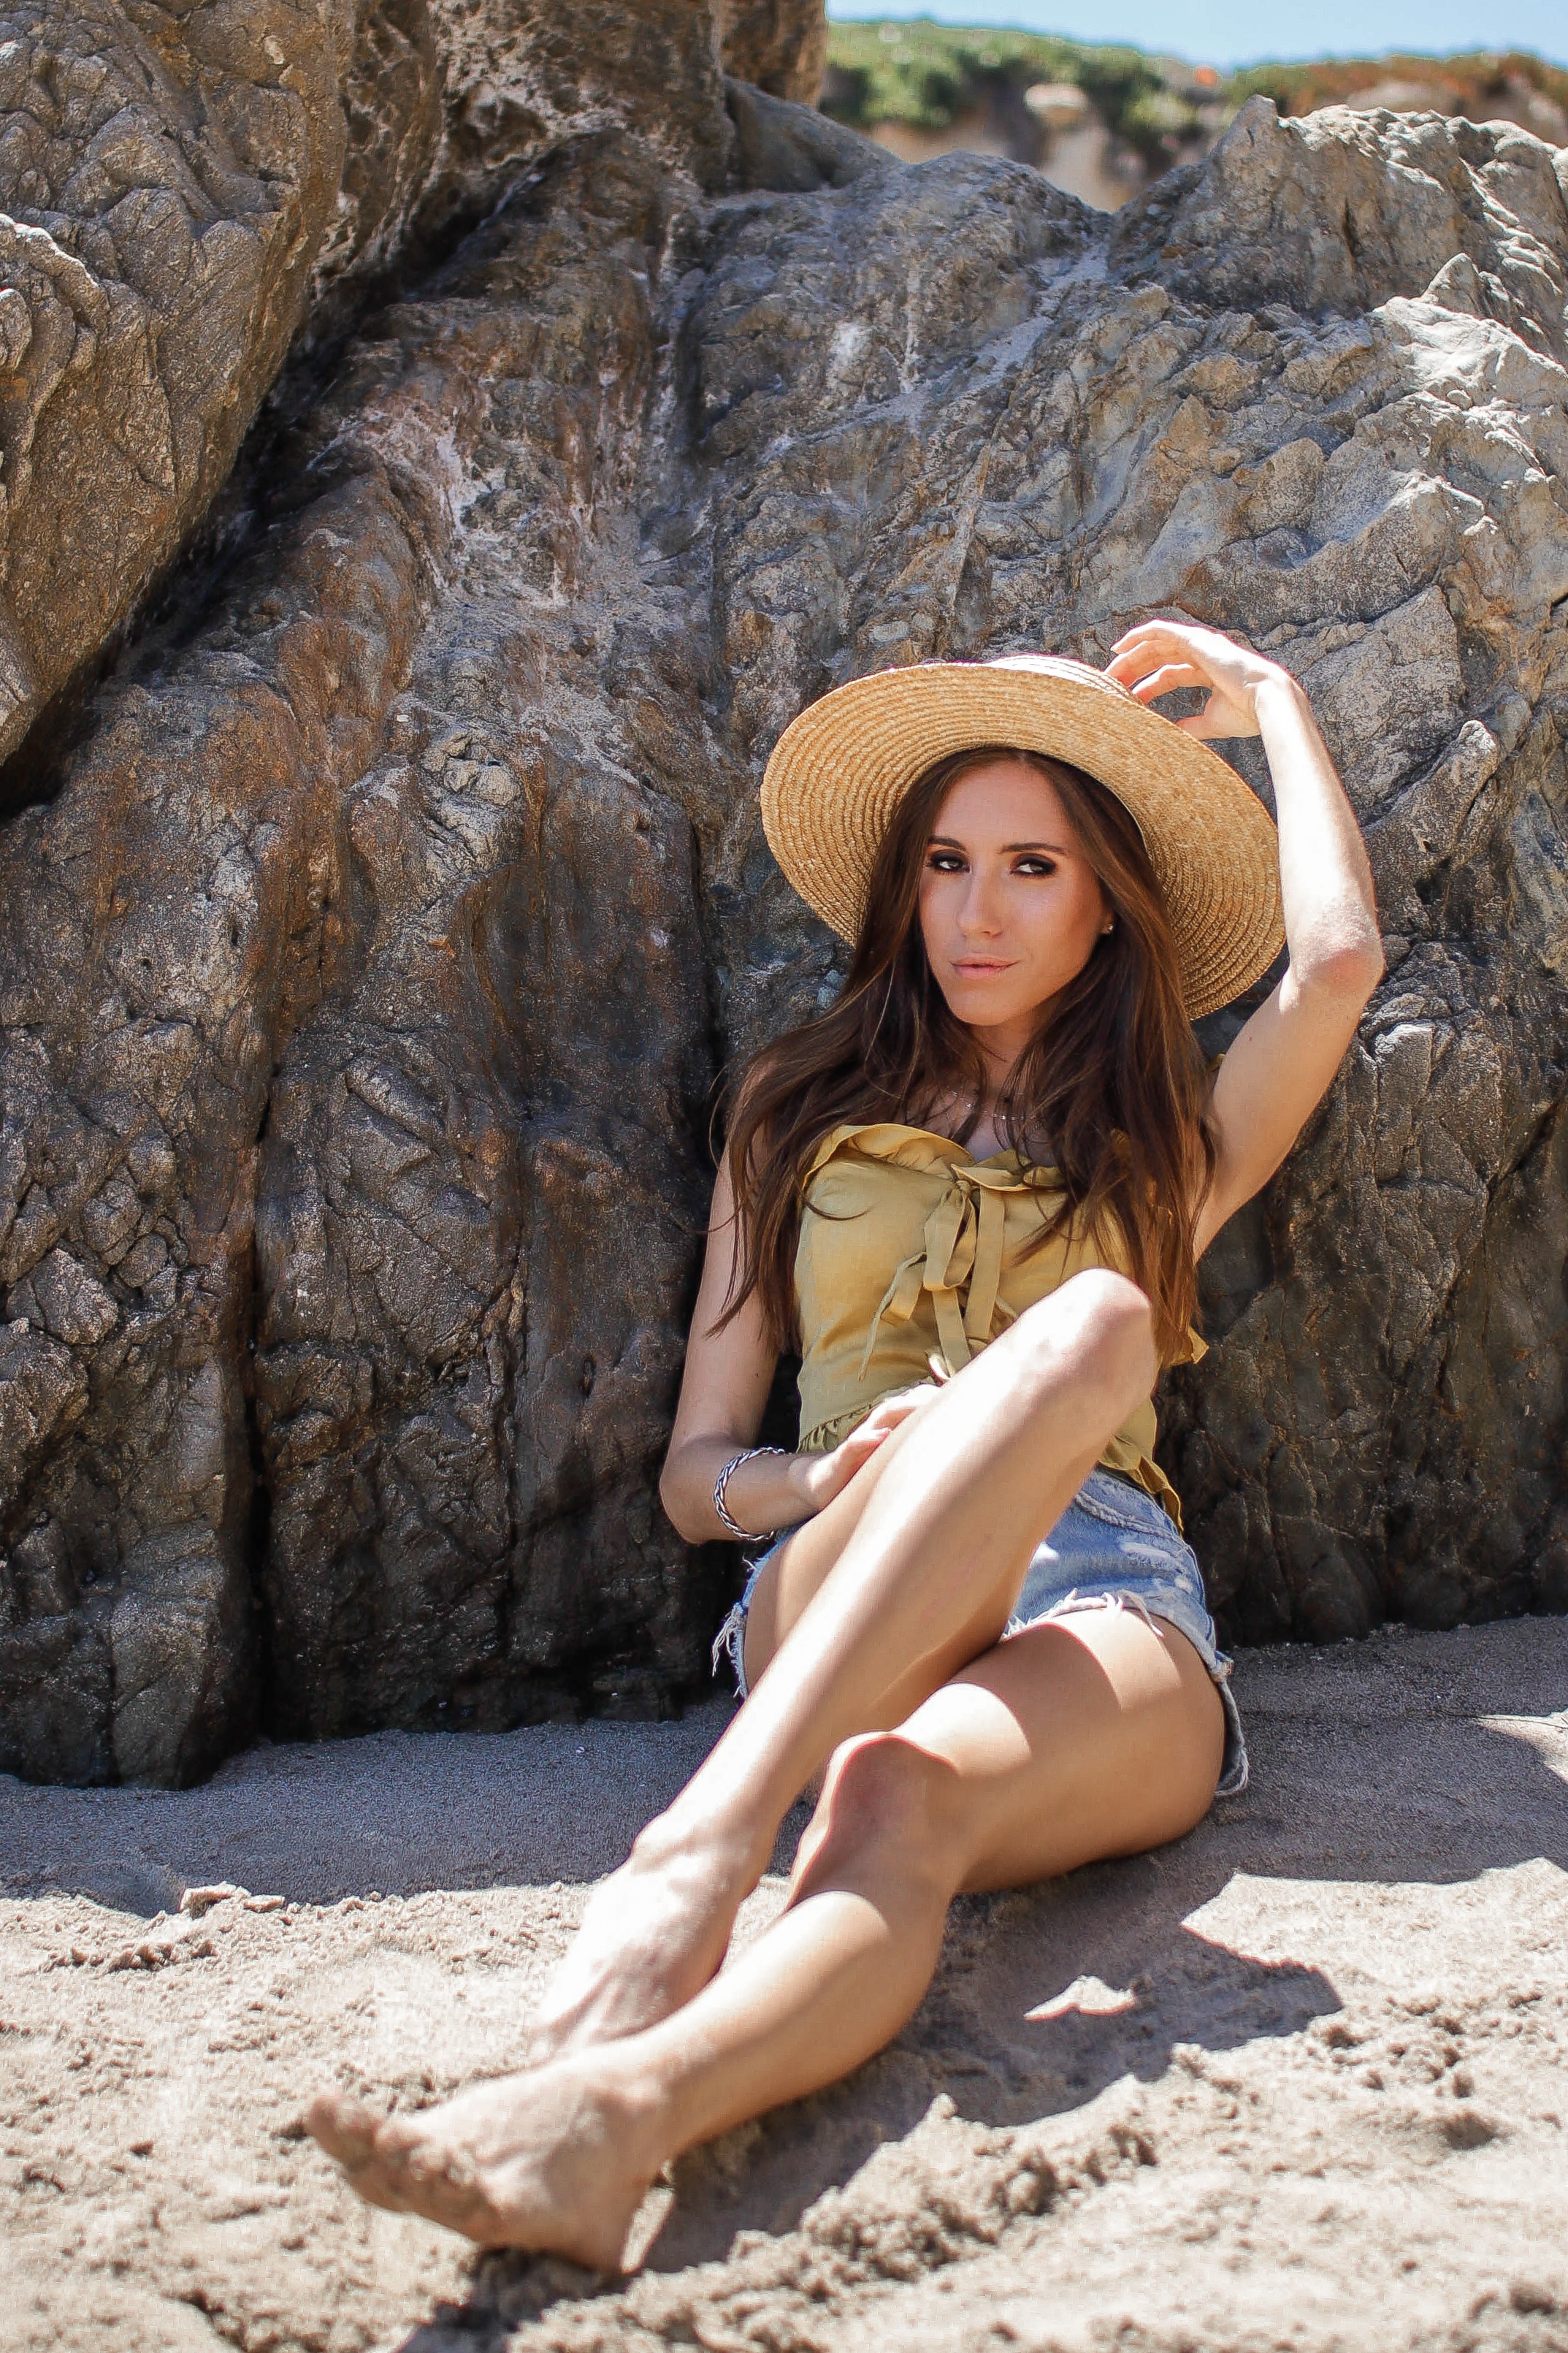 THE+HUNGARIAN+BRUNETTE+-+THE+BEST+BEACH+ACCESSORIES+YOU+CAN+ALSO+WEAR+IN+THE+CITY